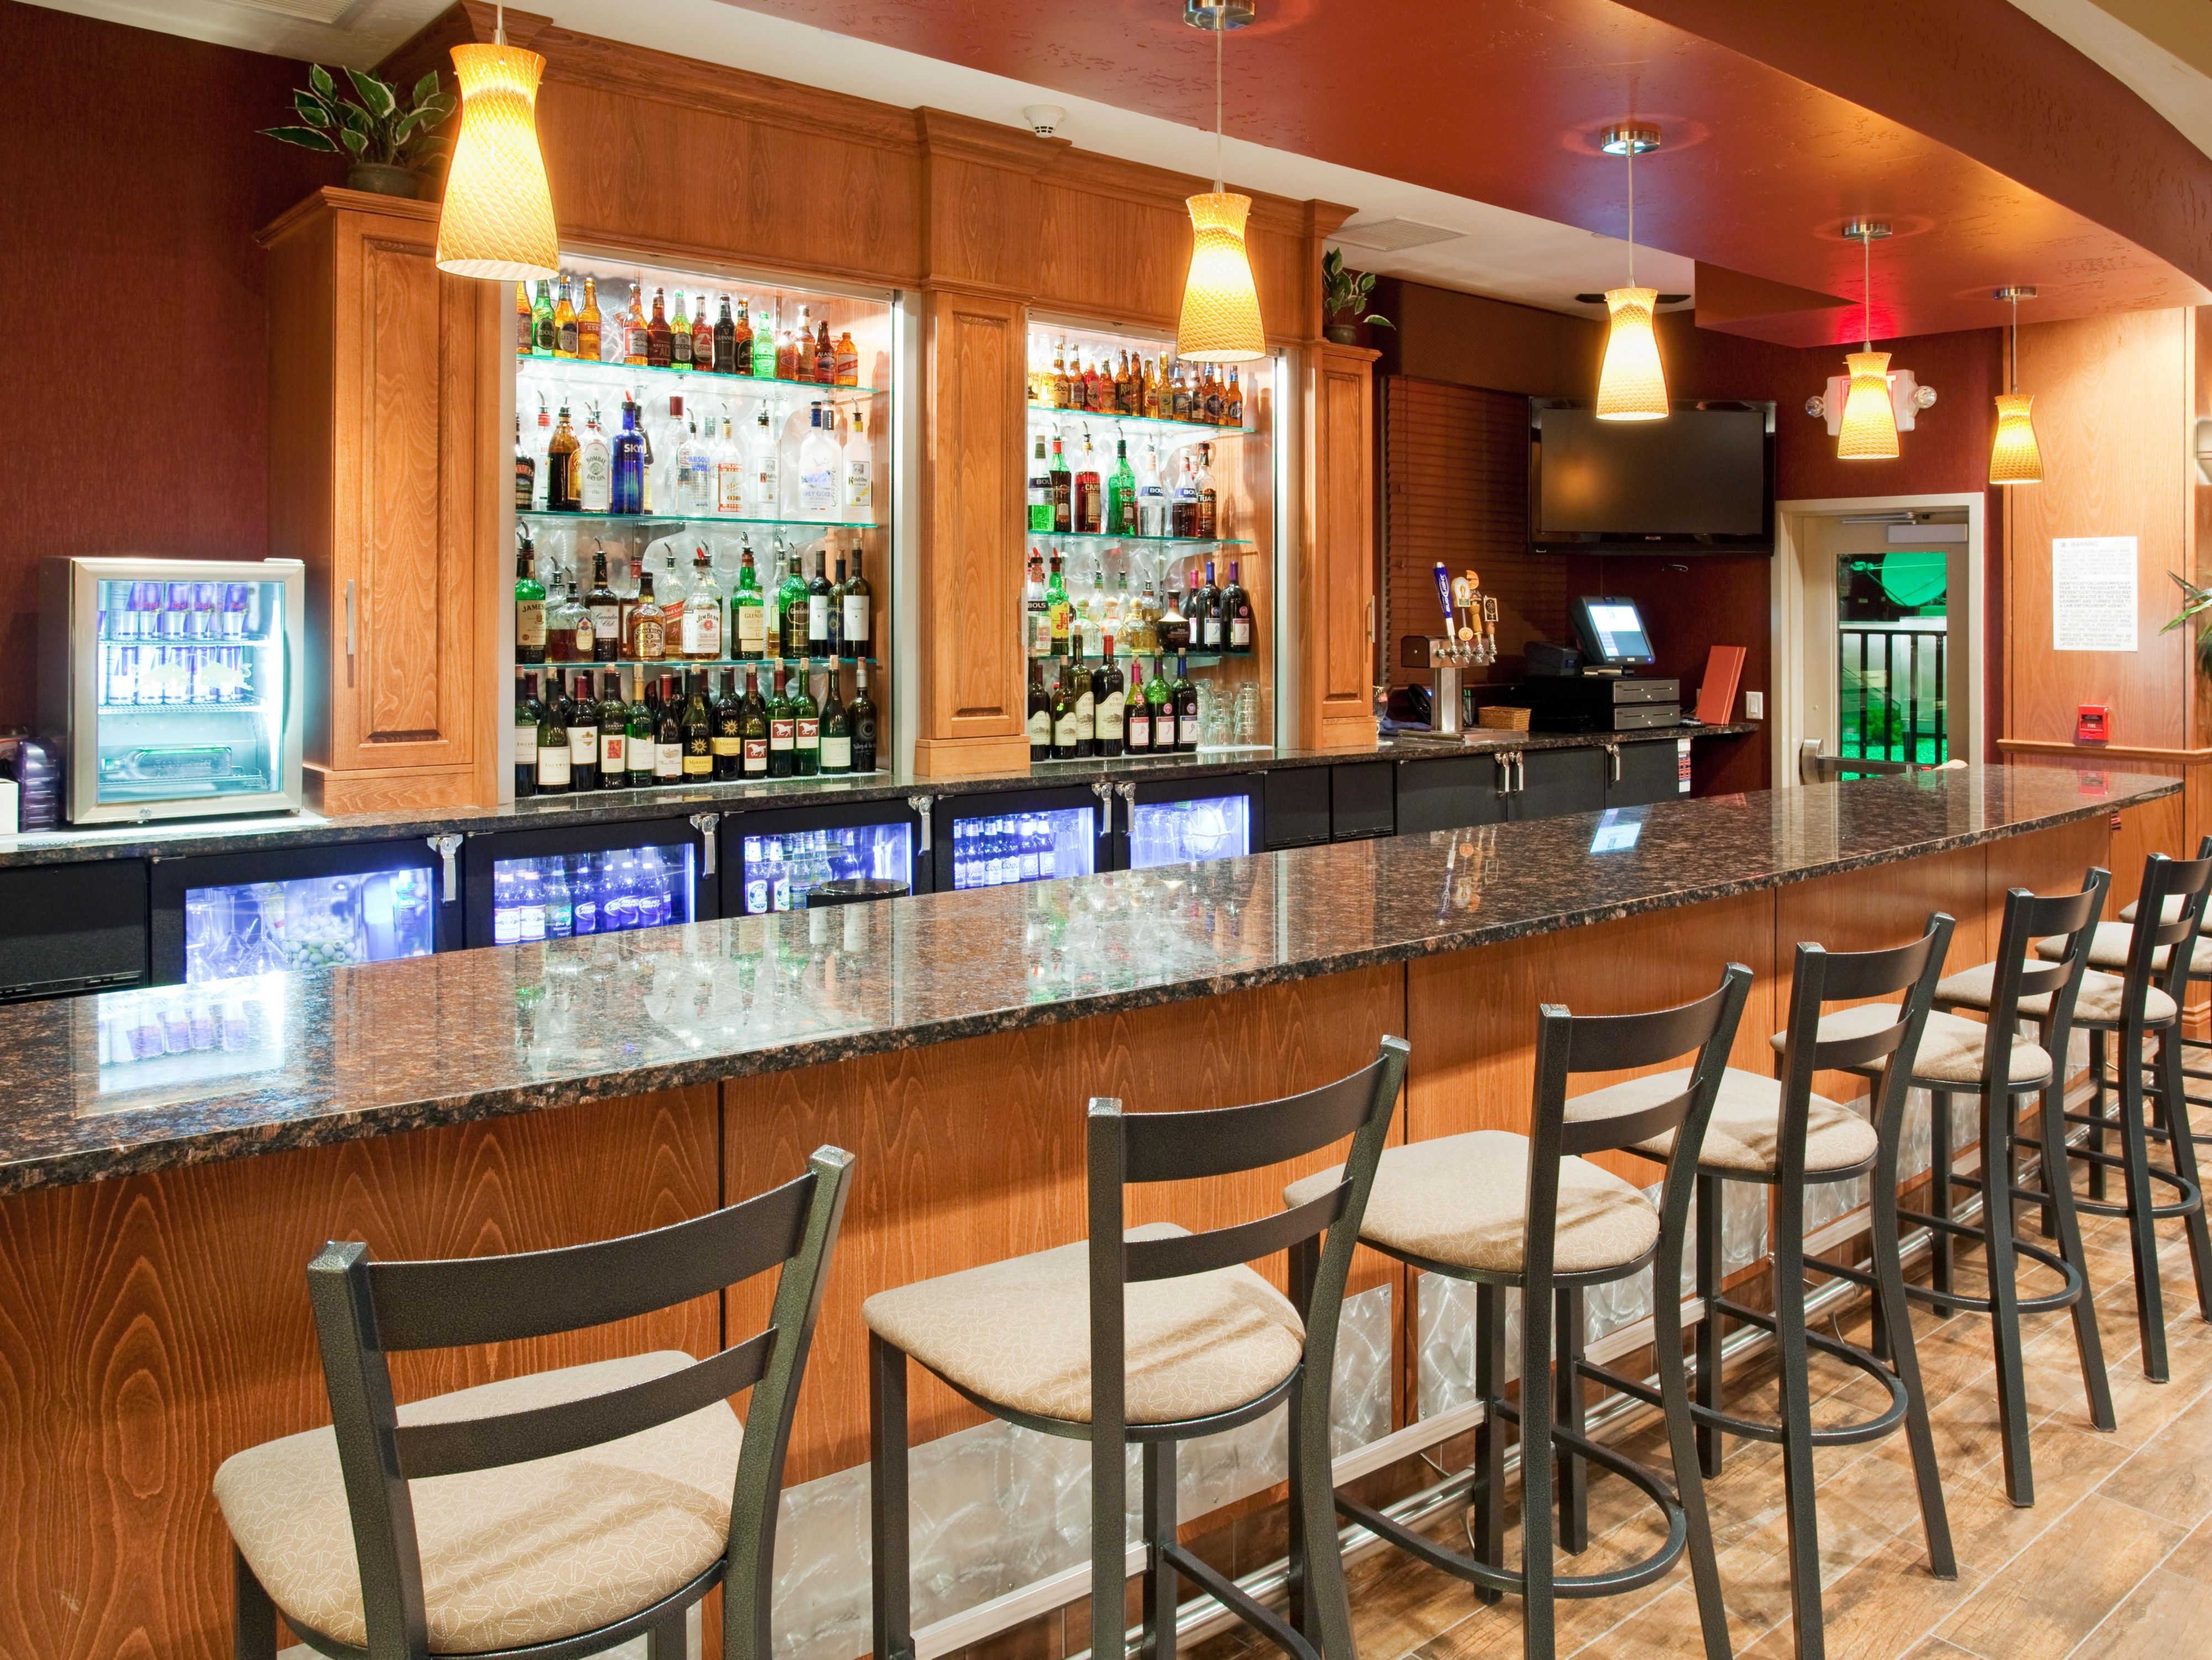 Enjoy a glass of wine at the Grand Valley Grill